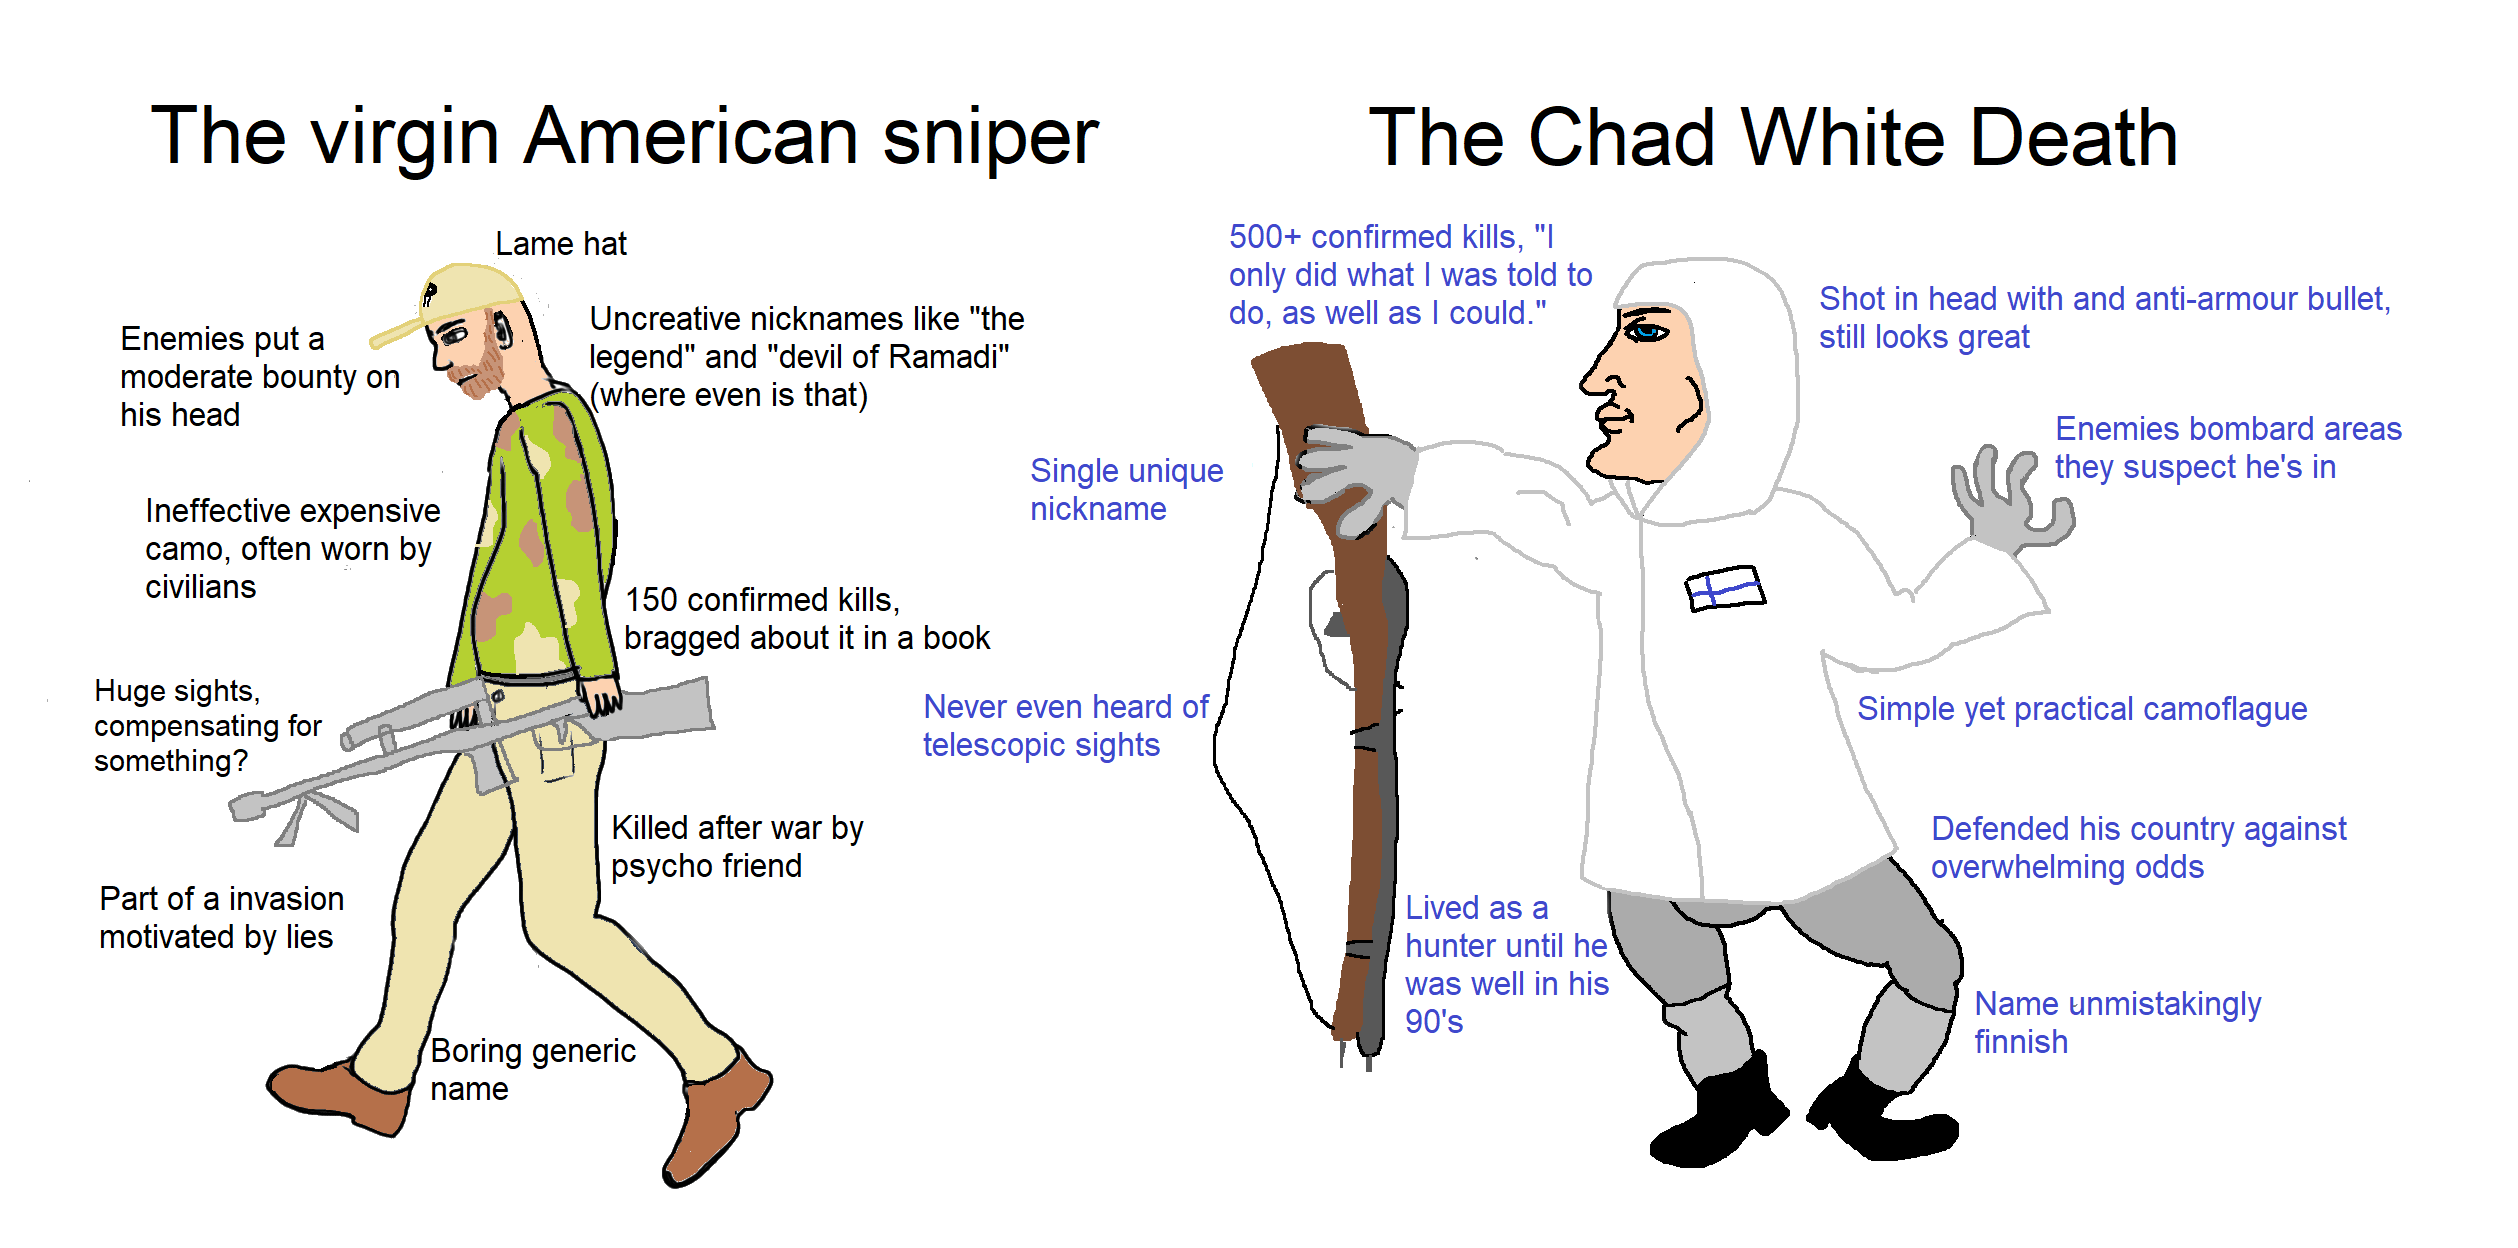 Chad Of White Historymemes